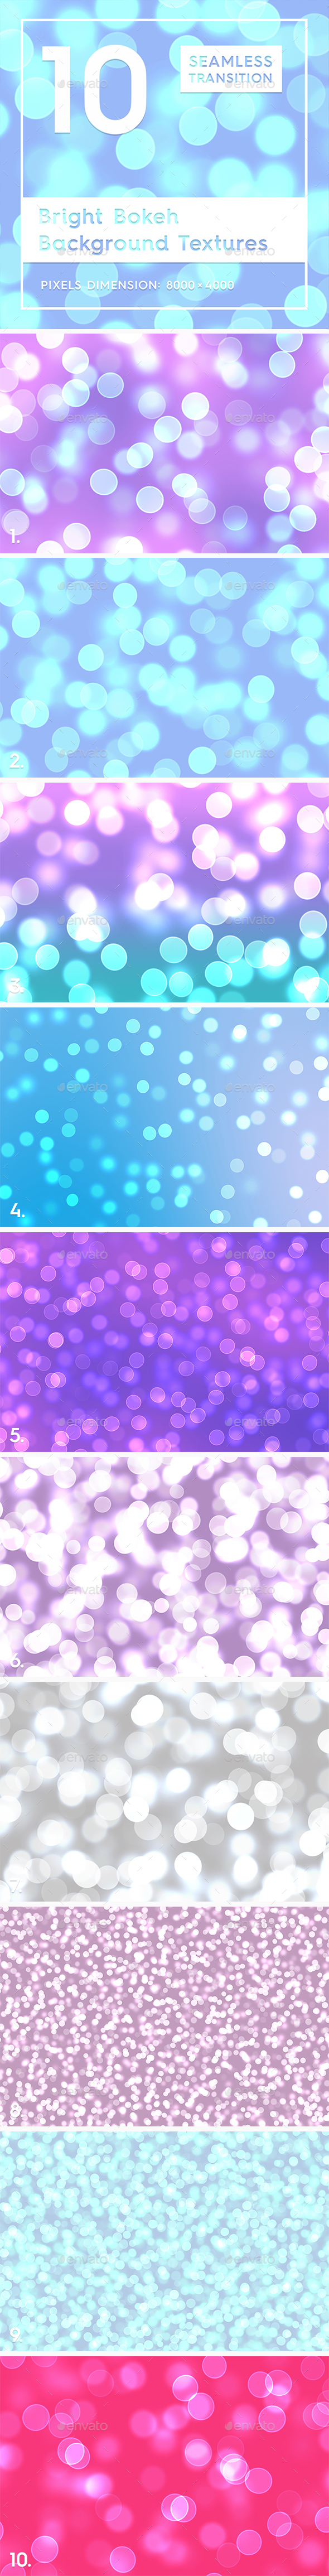 10 Bright Bokeh Background Textures - Abstract Backgrounds